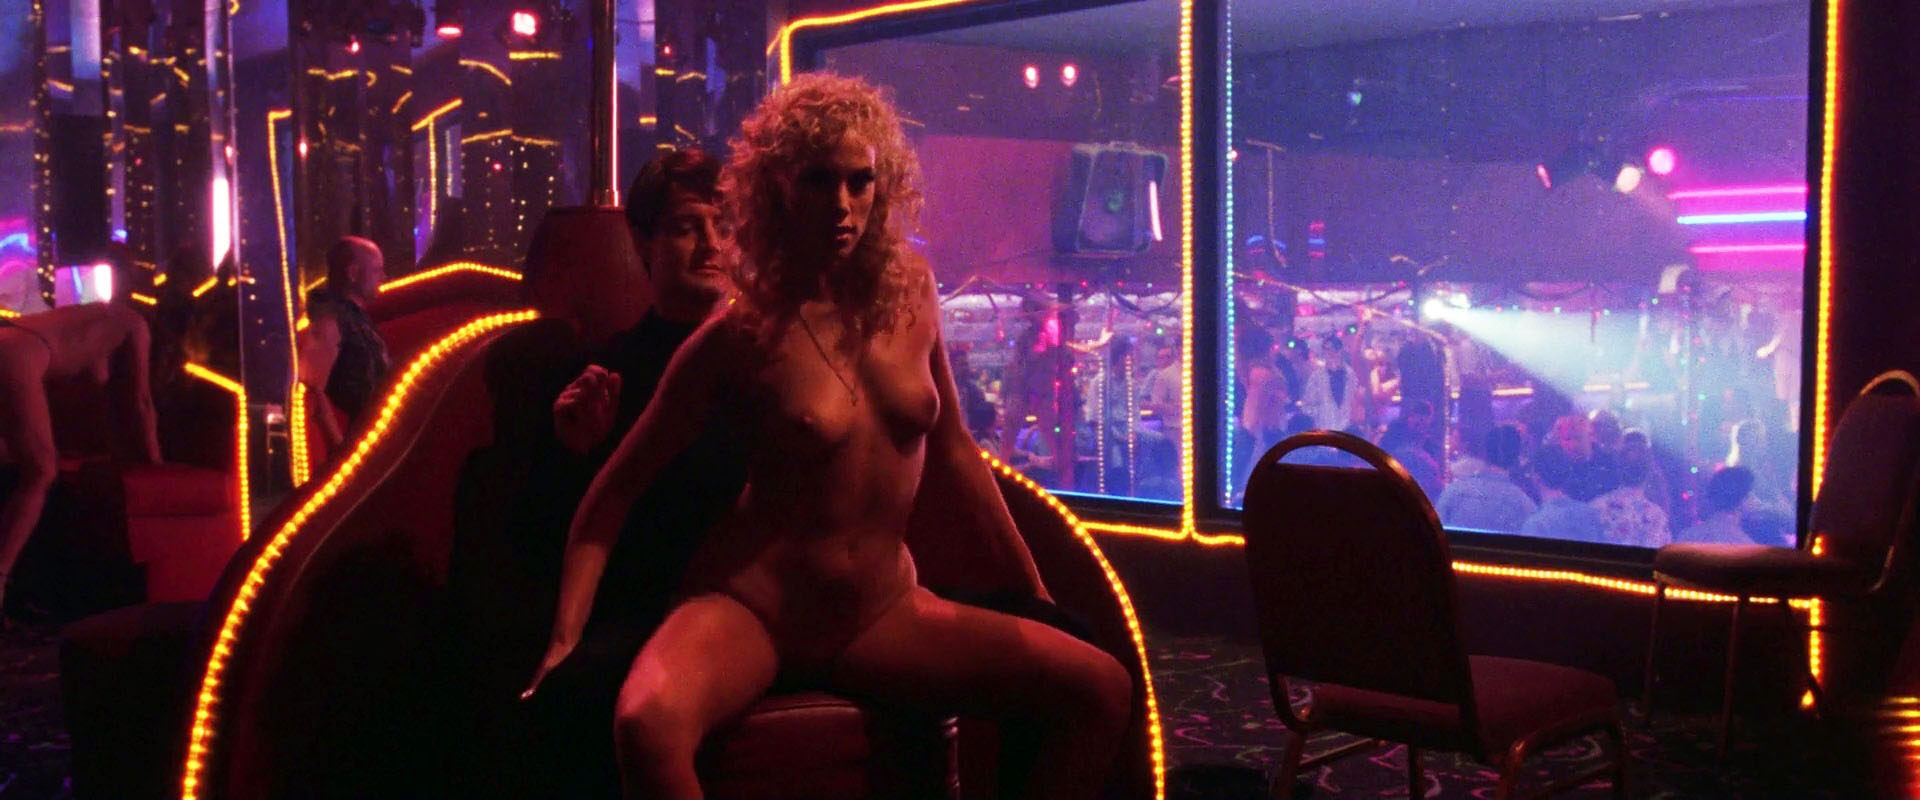 Elizabeth Berkley – Showgirls (1995) HD 1080p